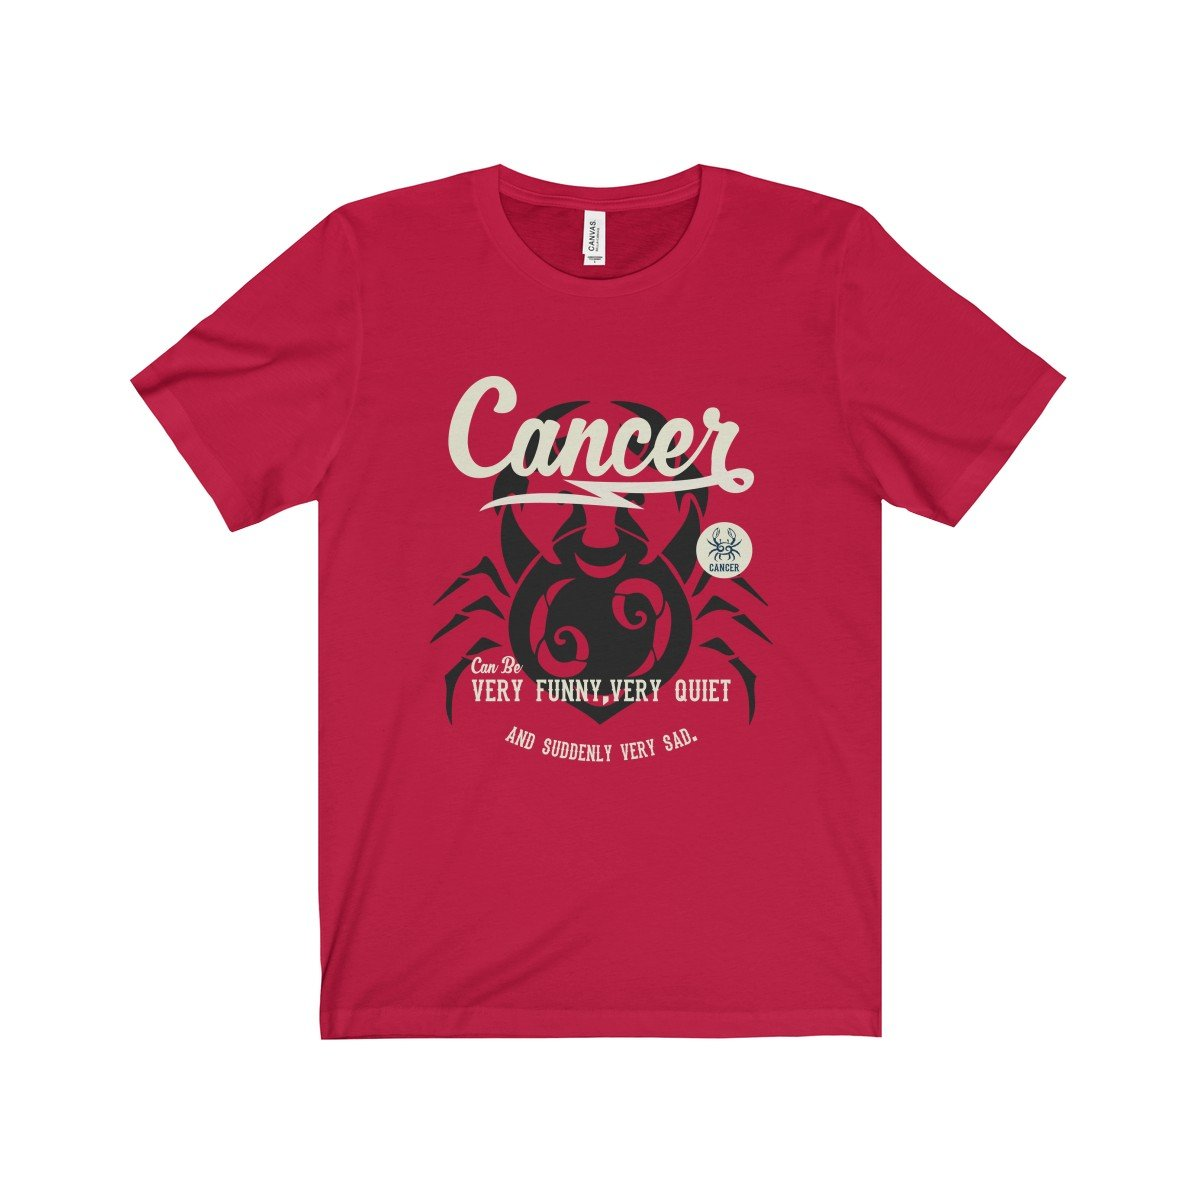 Cancer red shirt novelty astrological birthday shirt unisex